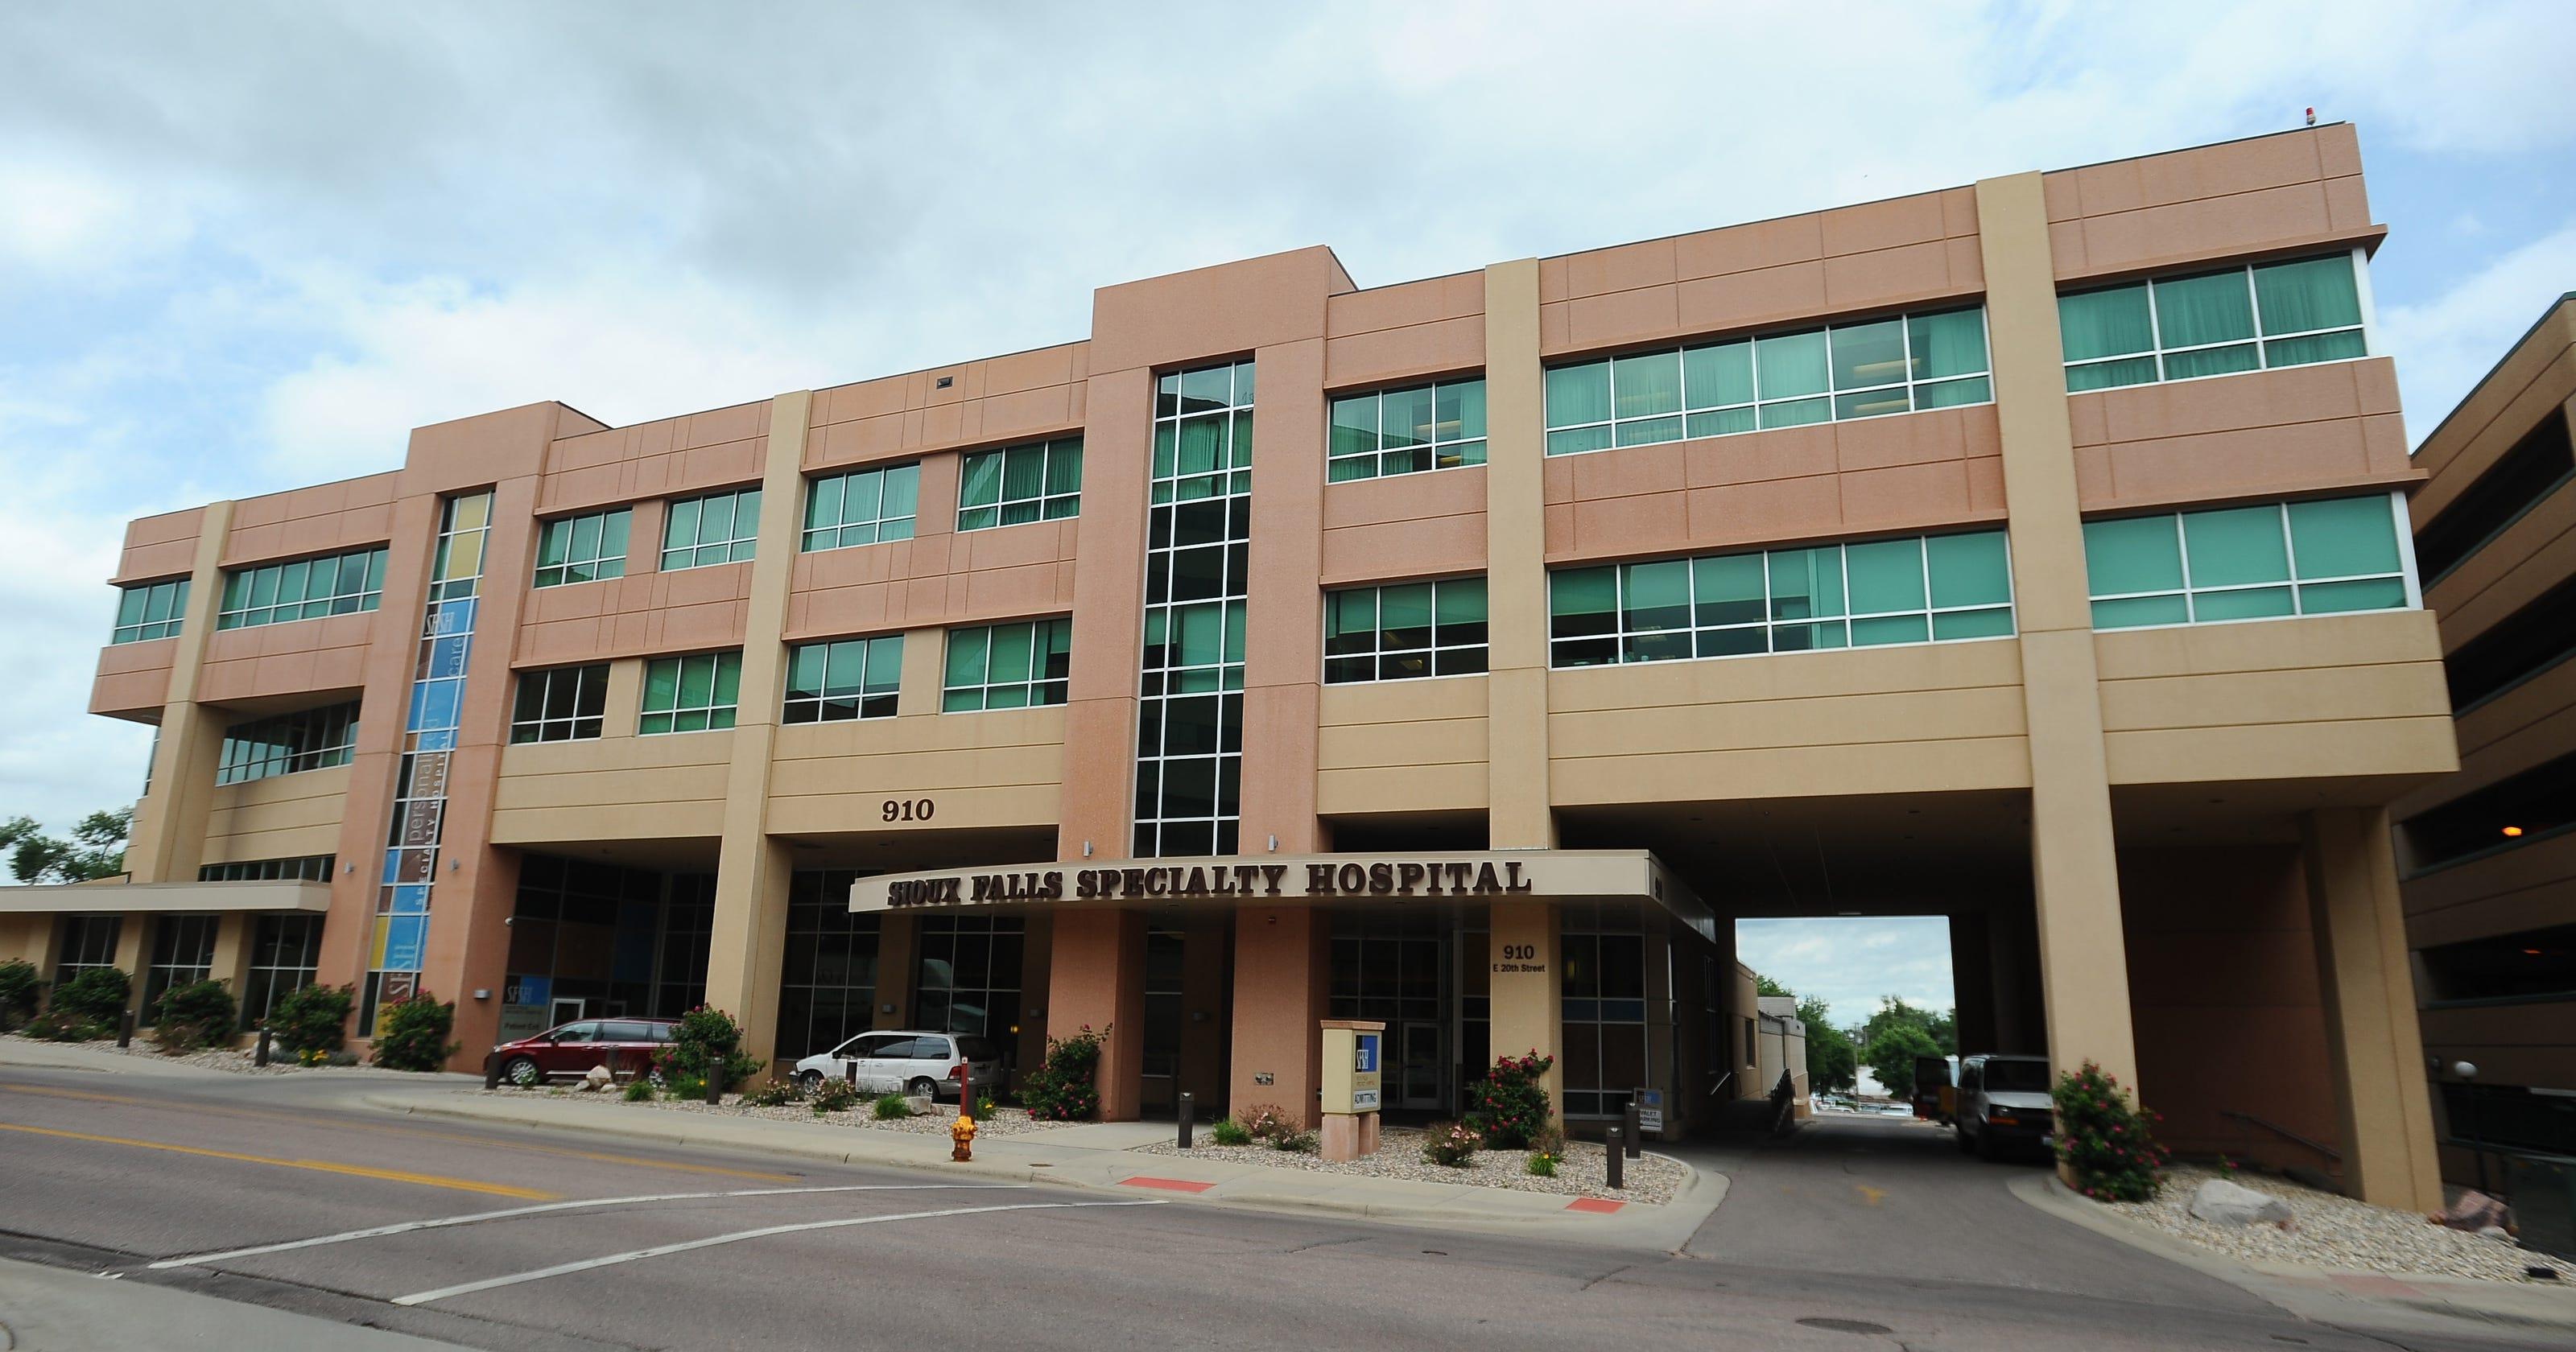 Physician-owned business draws questions about conflicts